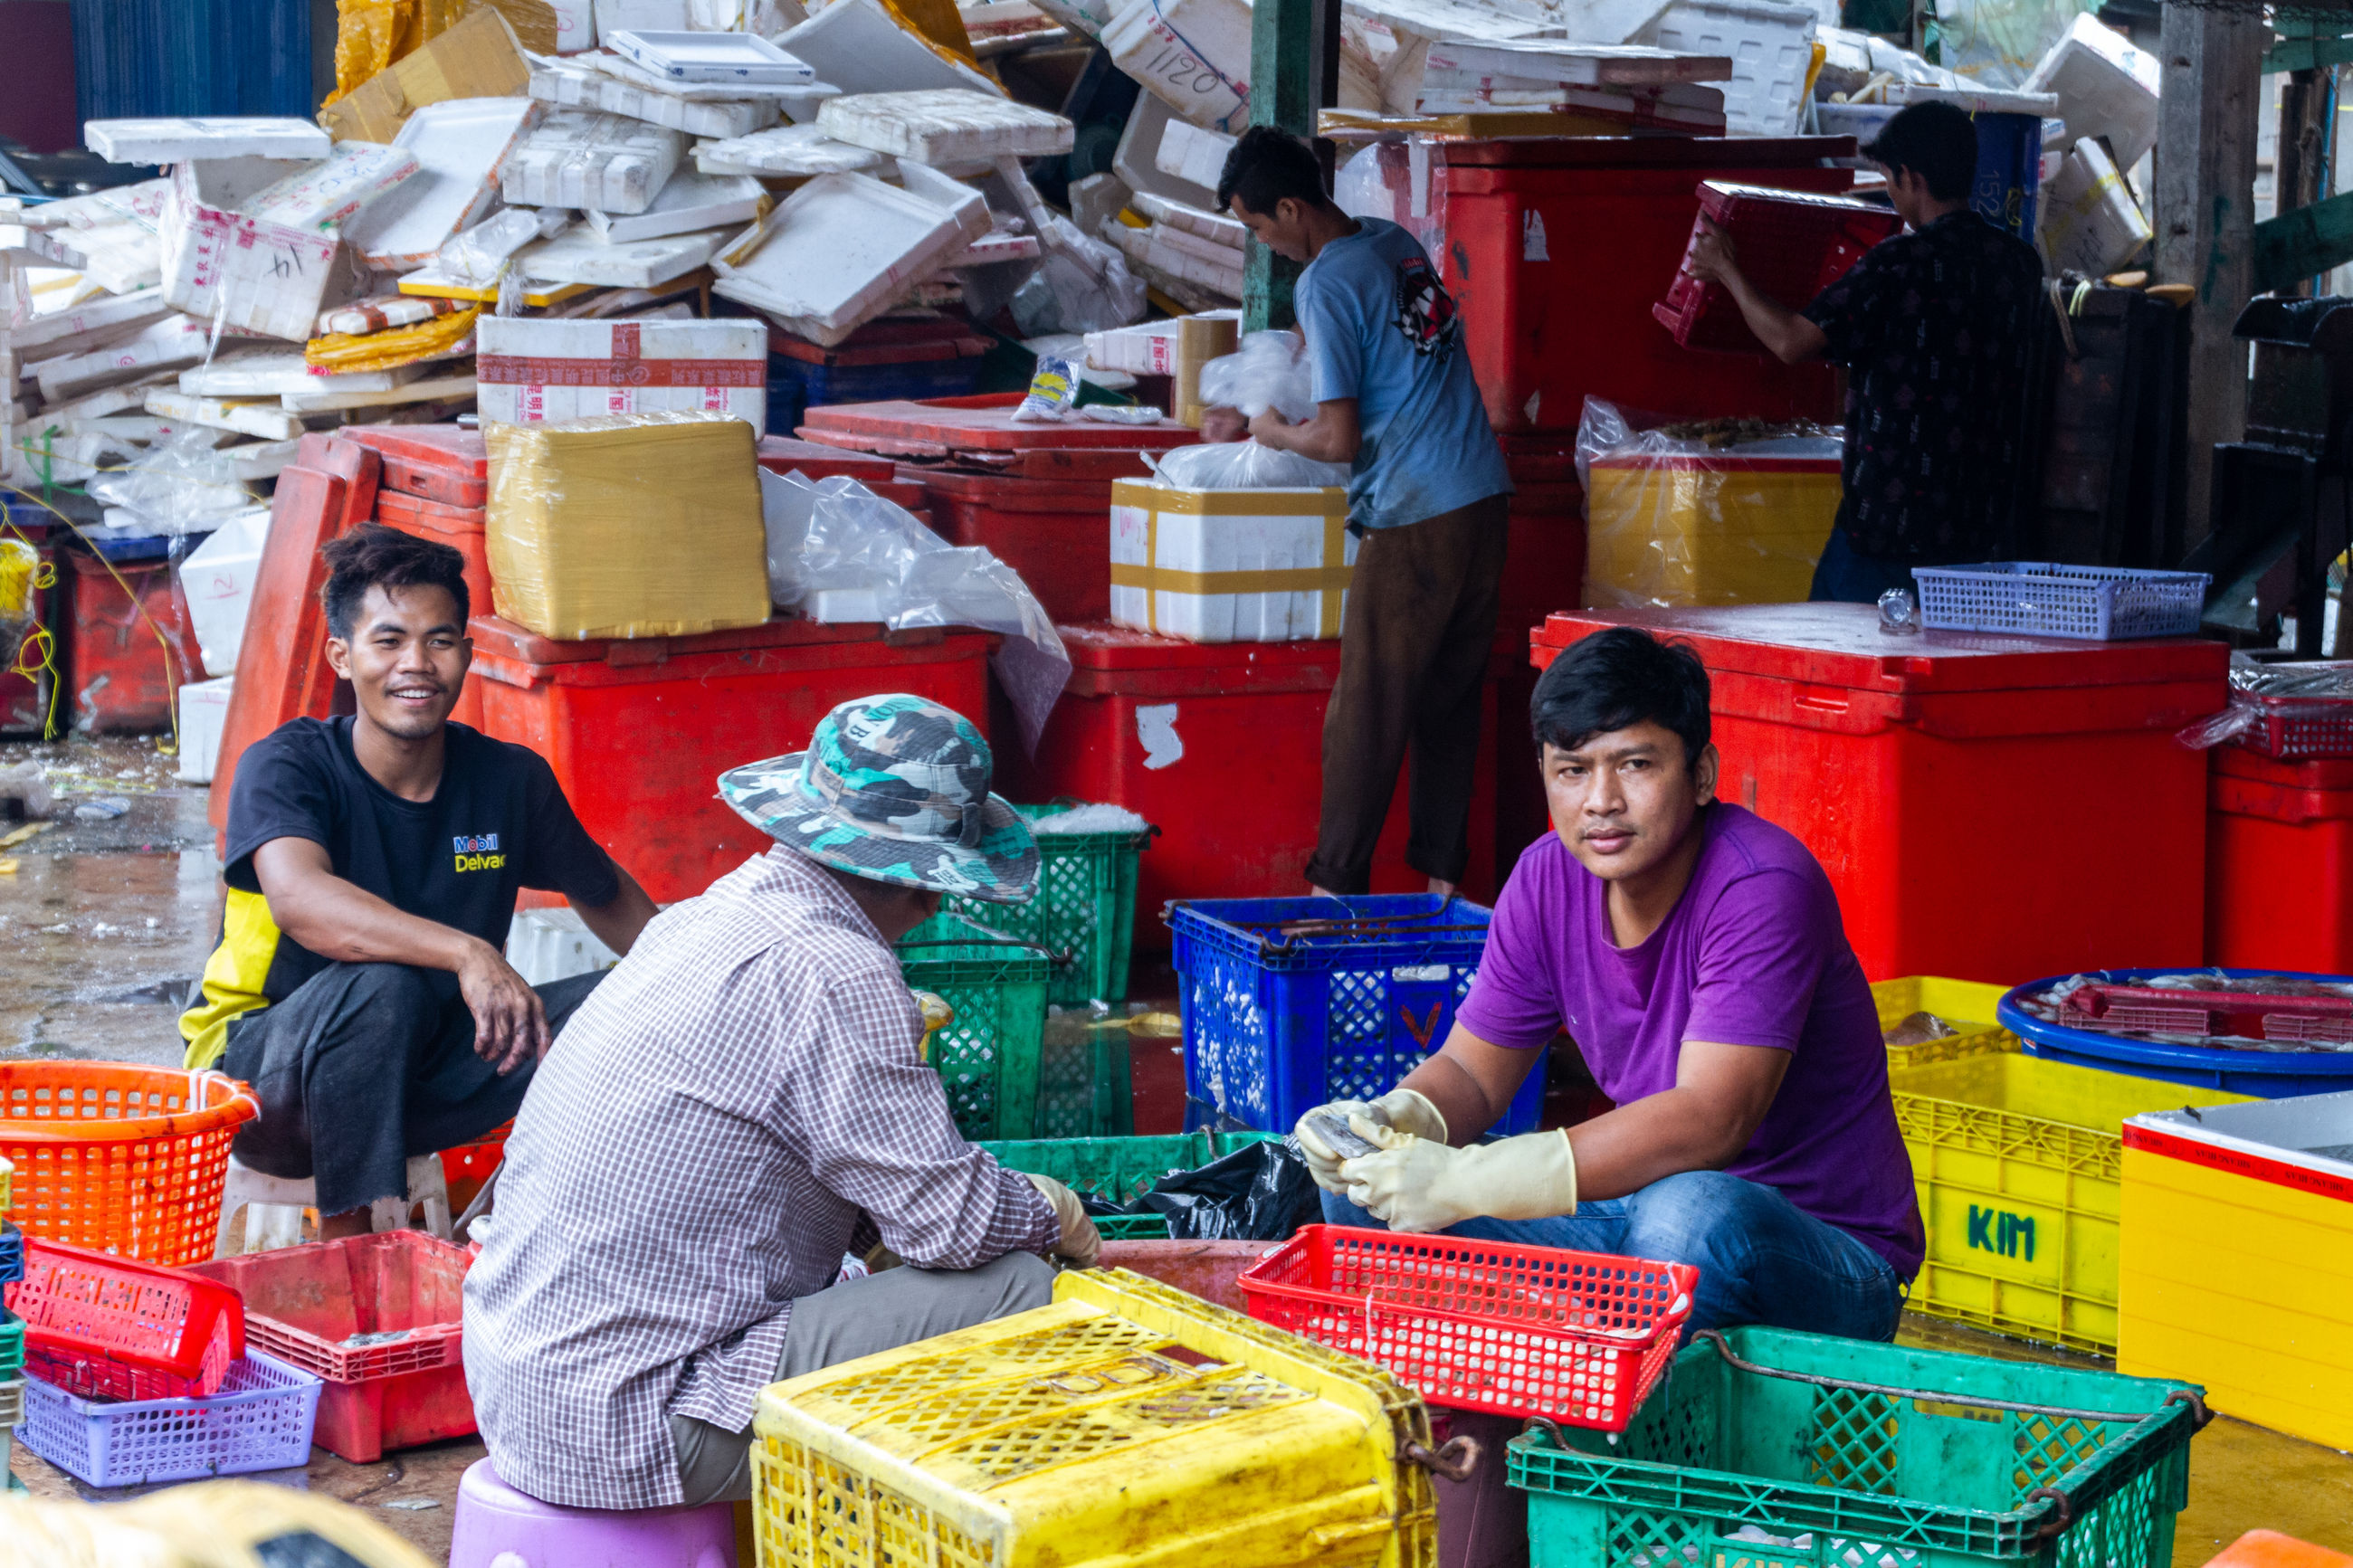 market, retail, women, market stall, sitting, small business, for sale, business, real people, container, casual clothing, people, group of people, adult, front view, men, large group of objects, portrait, choice, three quarter length, buying, sale, retail display